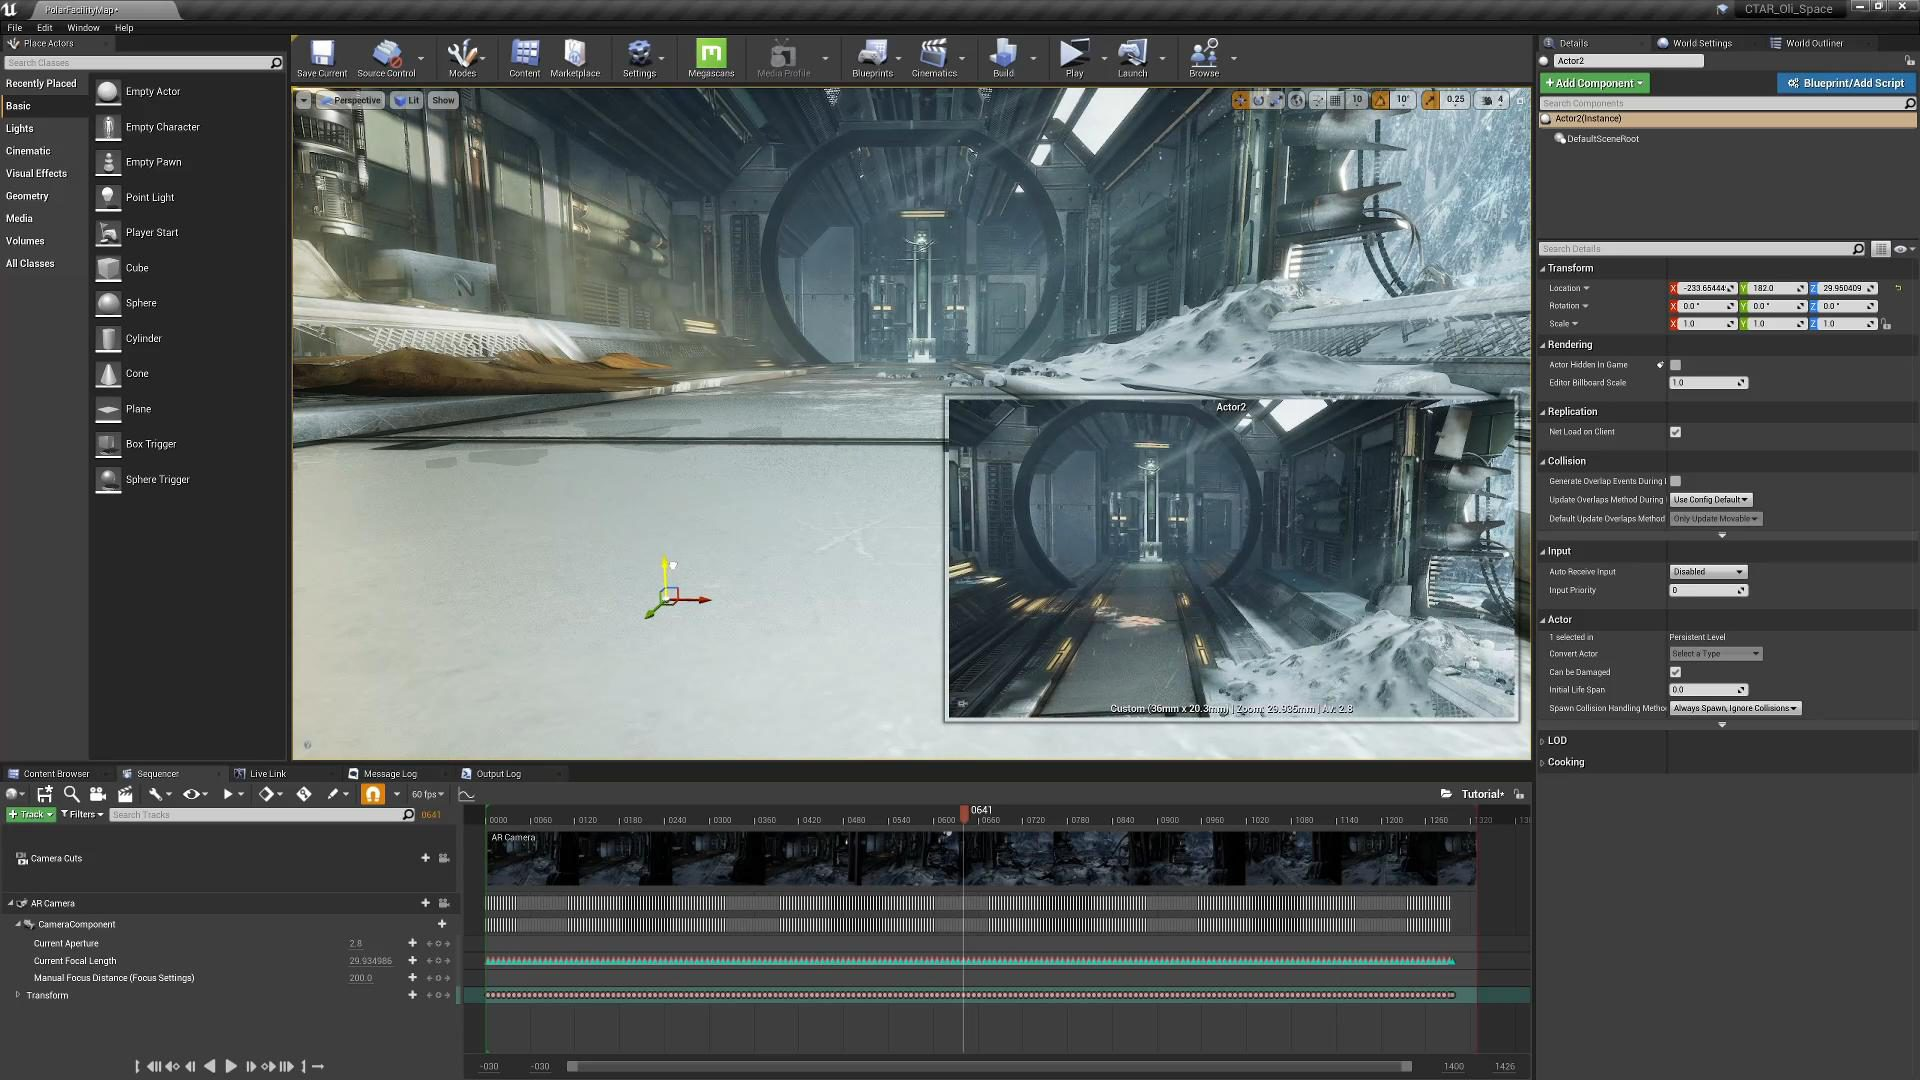 How to use CamTrackAR with Unreal Engine, Blender, and After Effects - Importing data to Unreal Engine 4